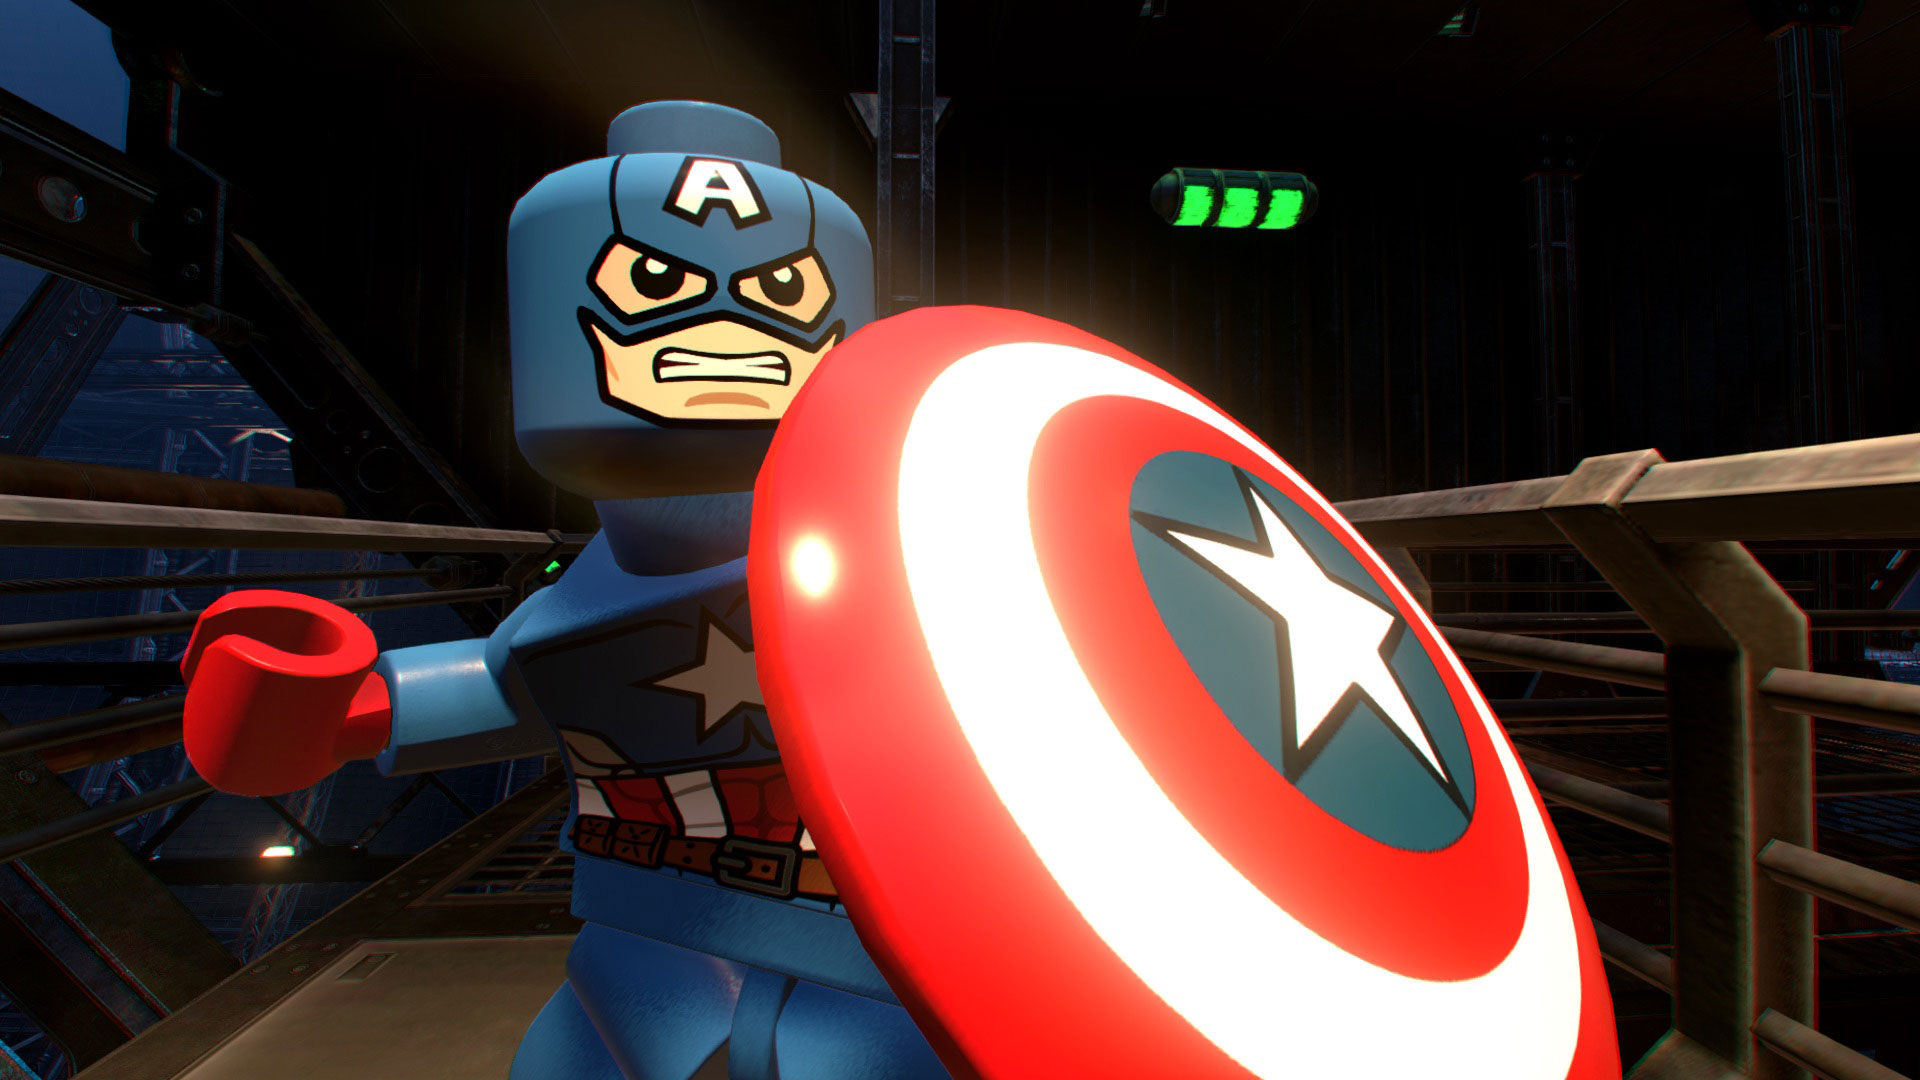 Lego marvel superheroes 2 review cramgaming back with the latest lego game which by now sees the developers reaching well into double figures with the lego franchise cue lego marvel superheroes 2 voltagebd Gallery